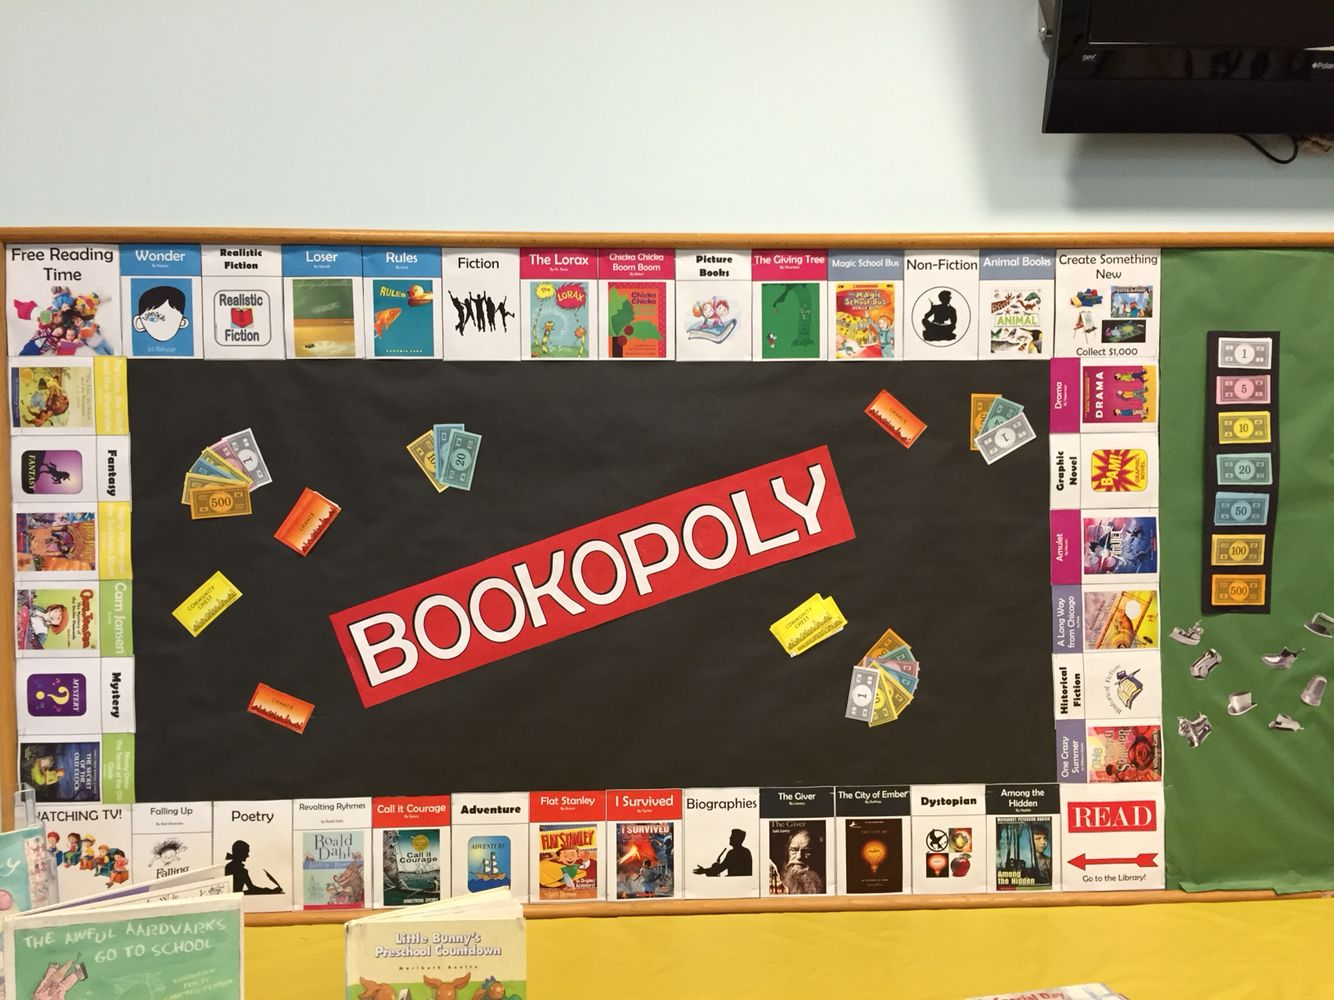 Our Sept Bookopoly Board